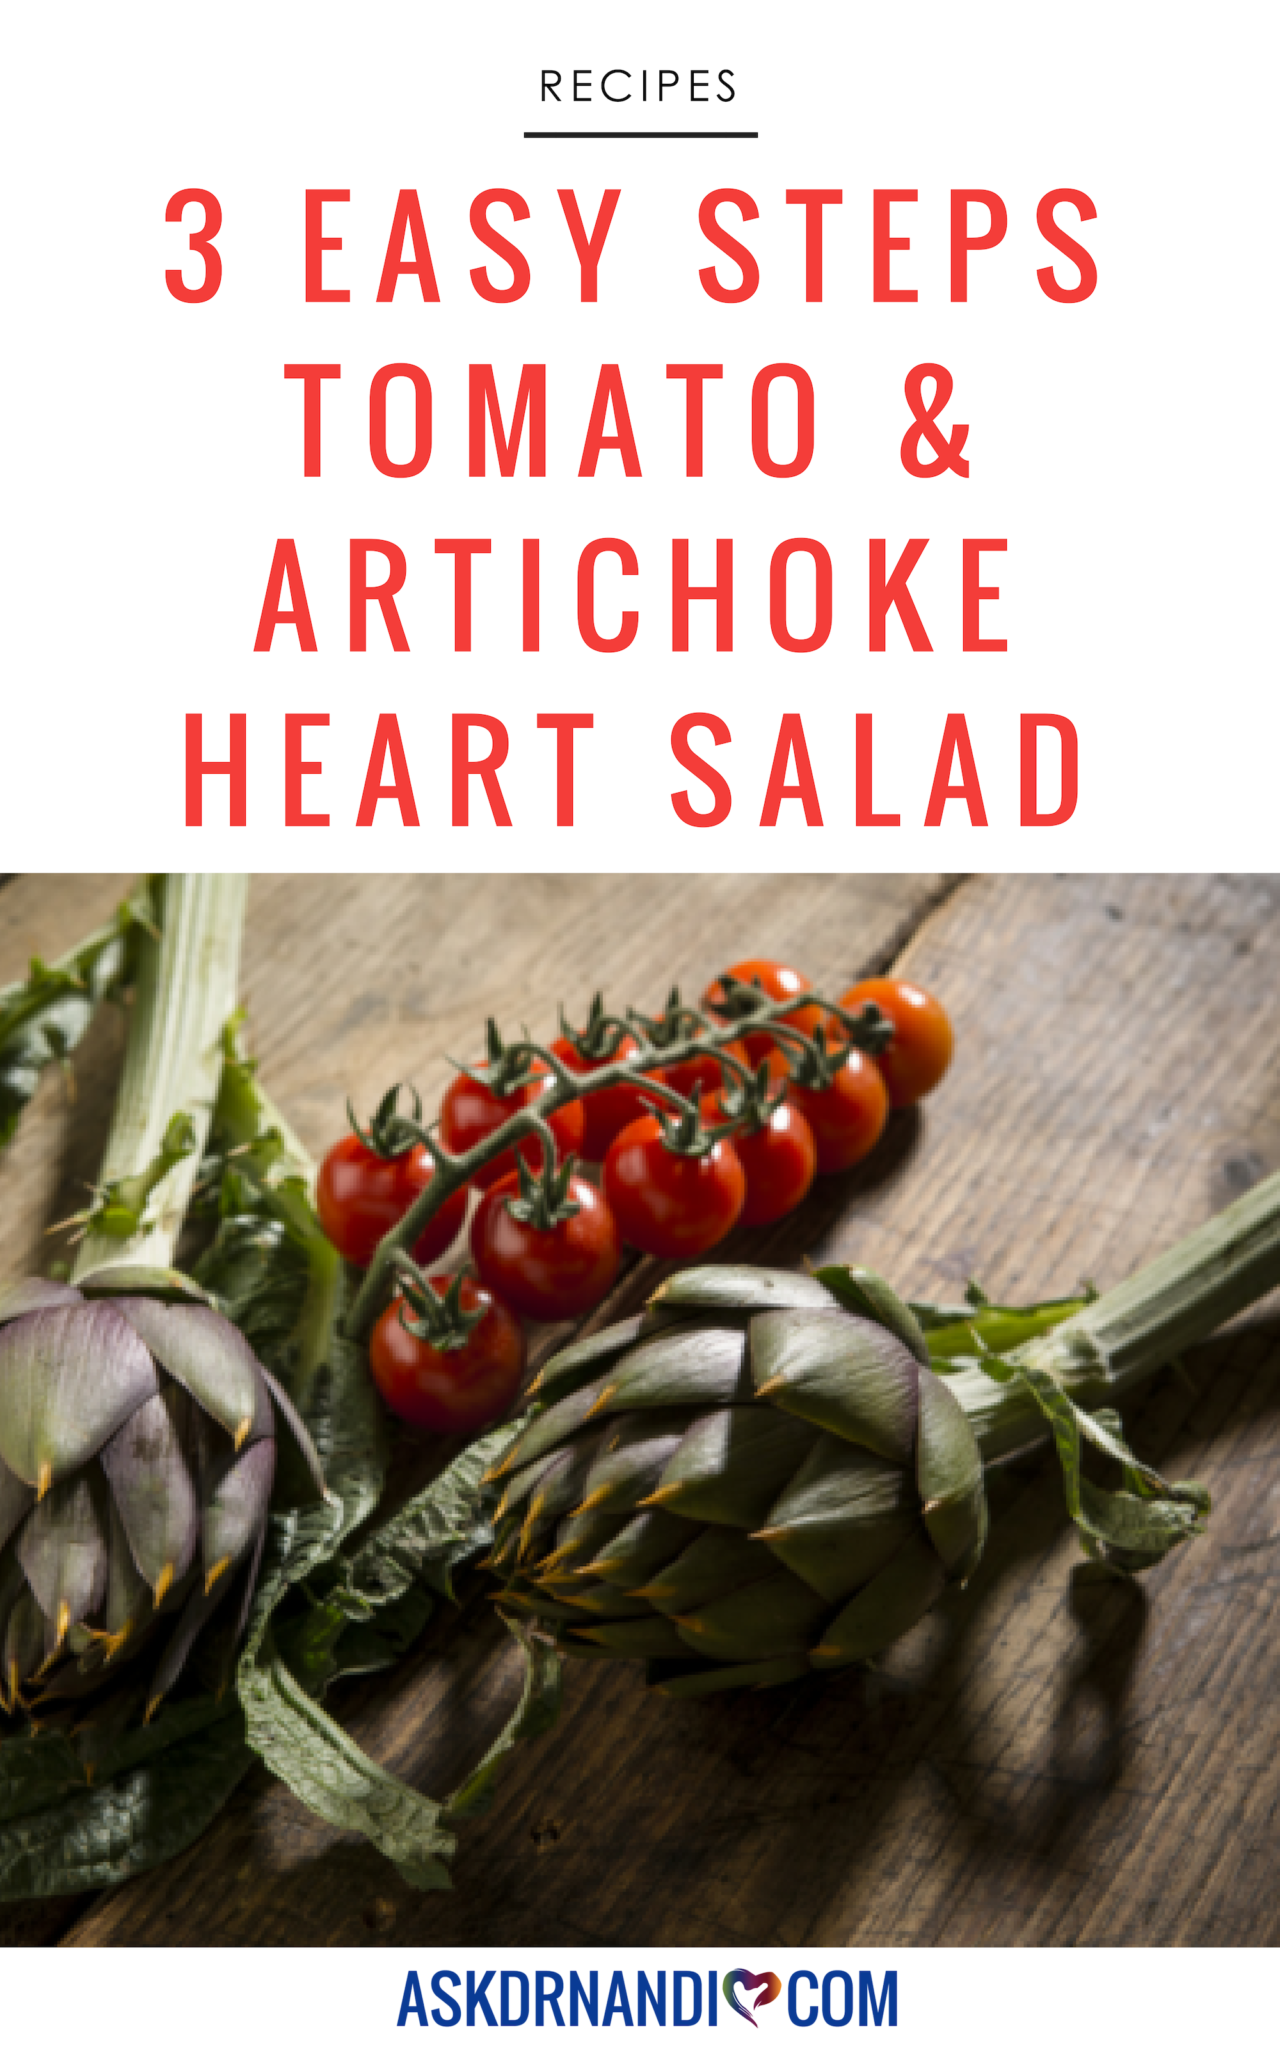 Tomato and Artichoke Heart Salad